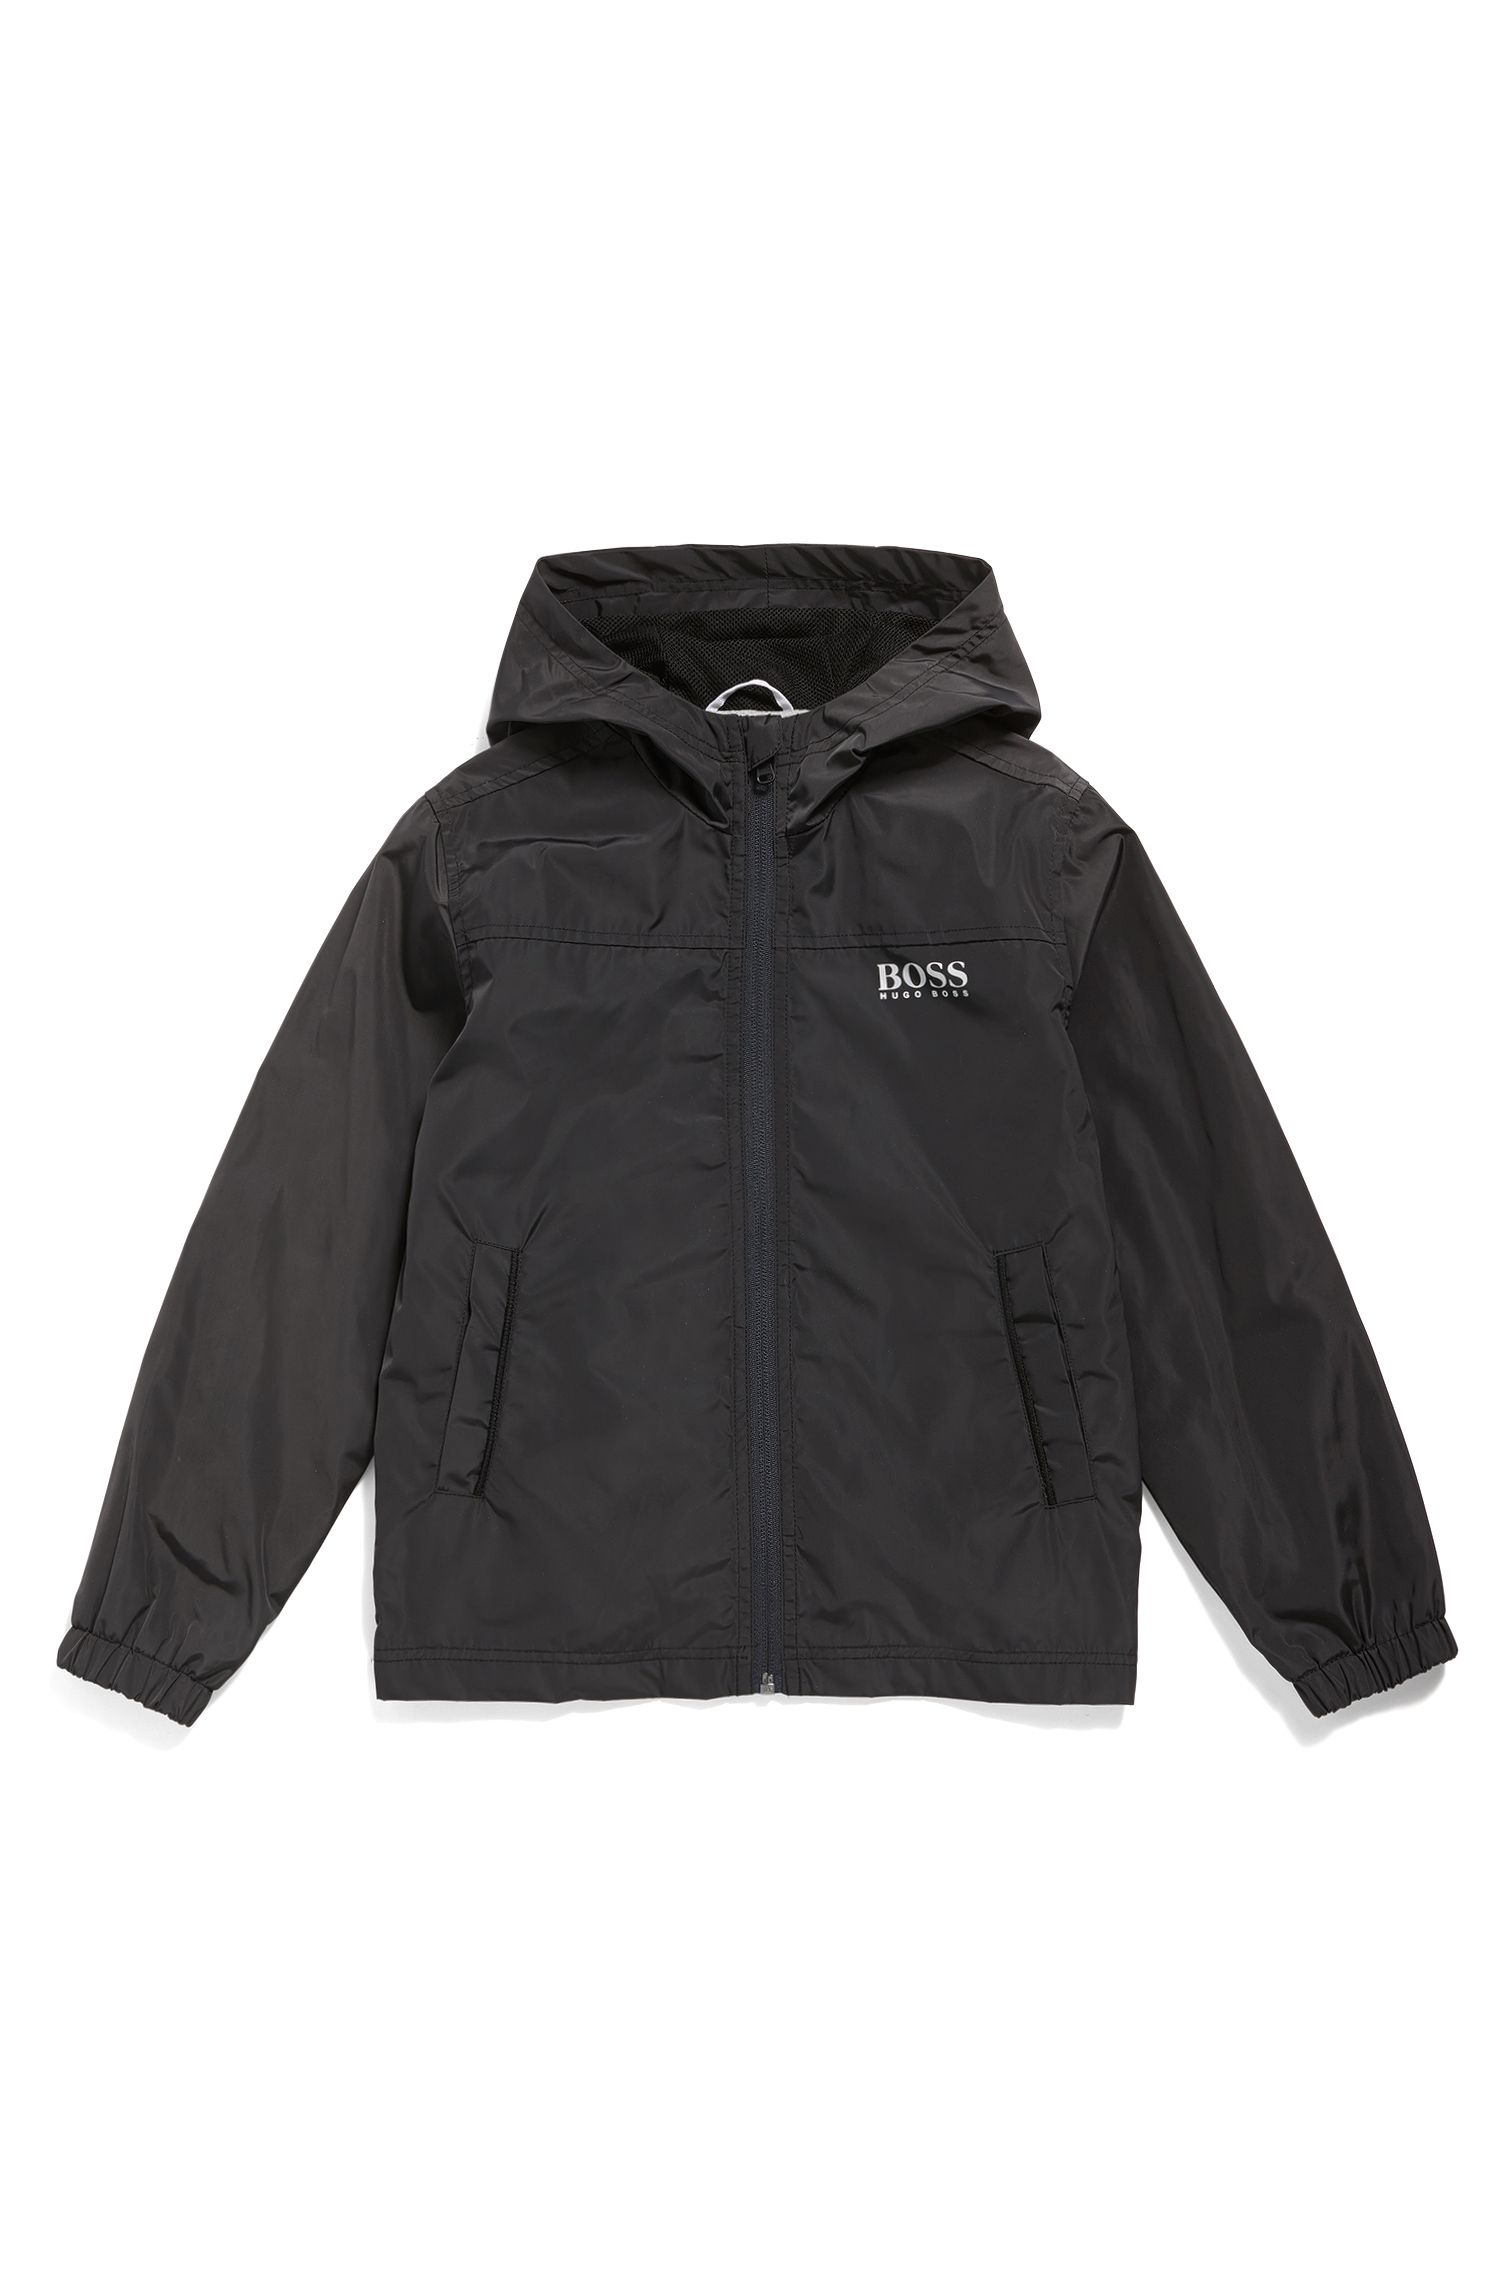 Kids' regular-fit jacket in ripstop fabric